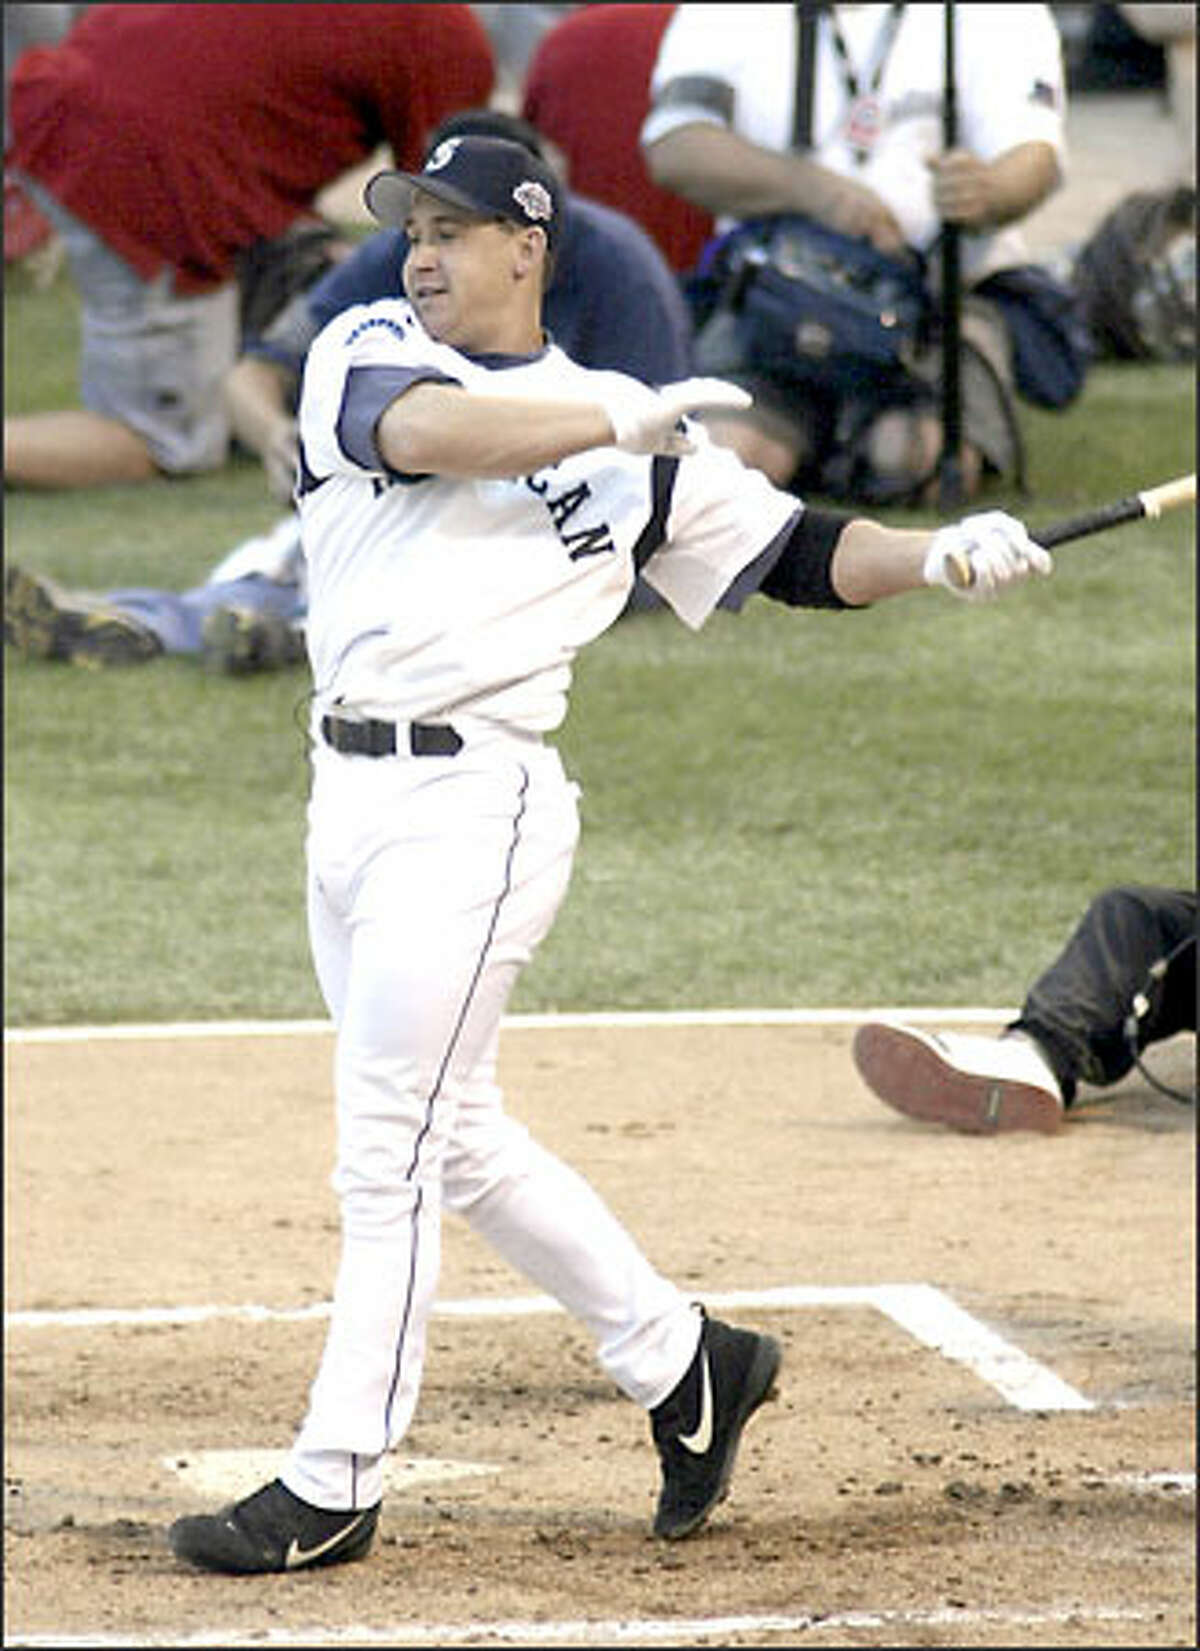 Bret Boone became the first player since Anaheim's Troy Glaus two years ago not to hit a home run.